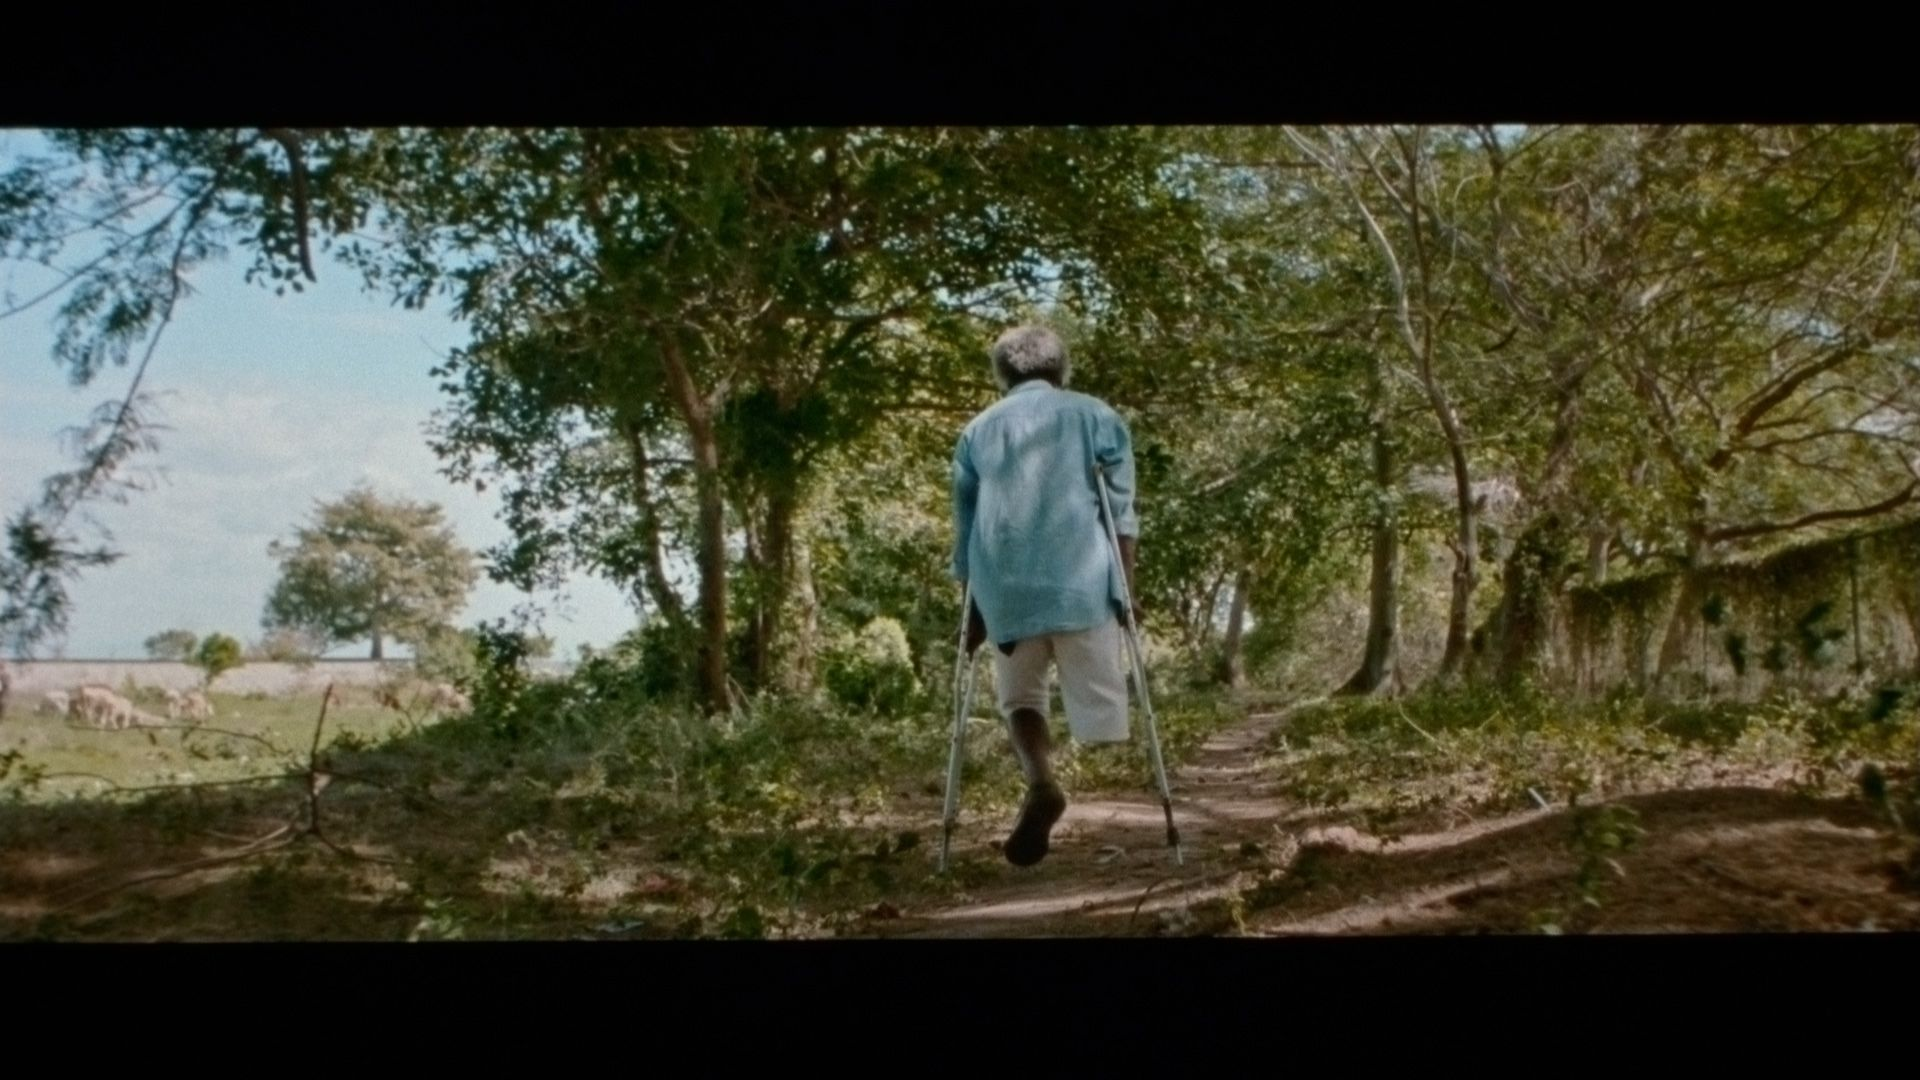 disabled man missing a leg using crutches to walk on dirt trail in between trees for singer Karim Ouellet music video of La Mer A Boire filmed by Les Gamins